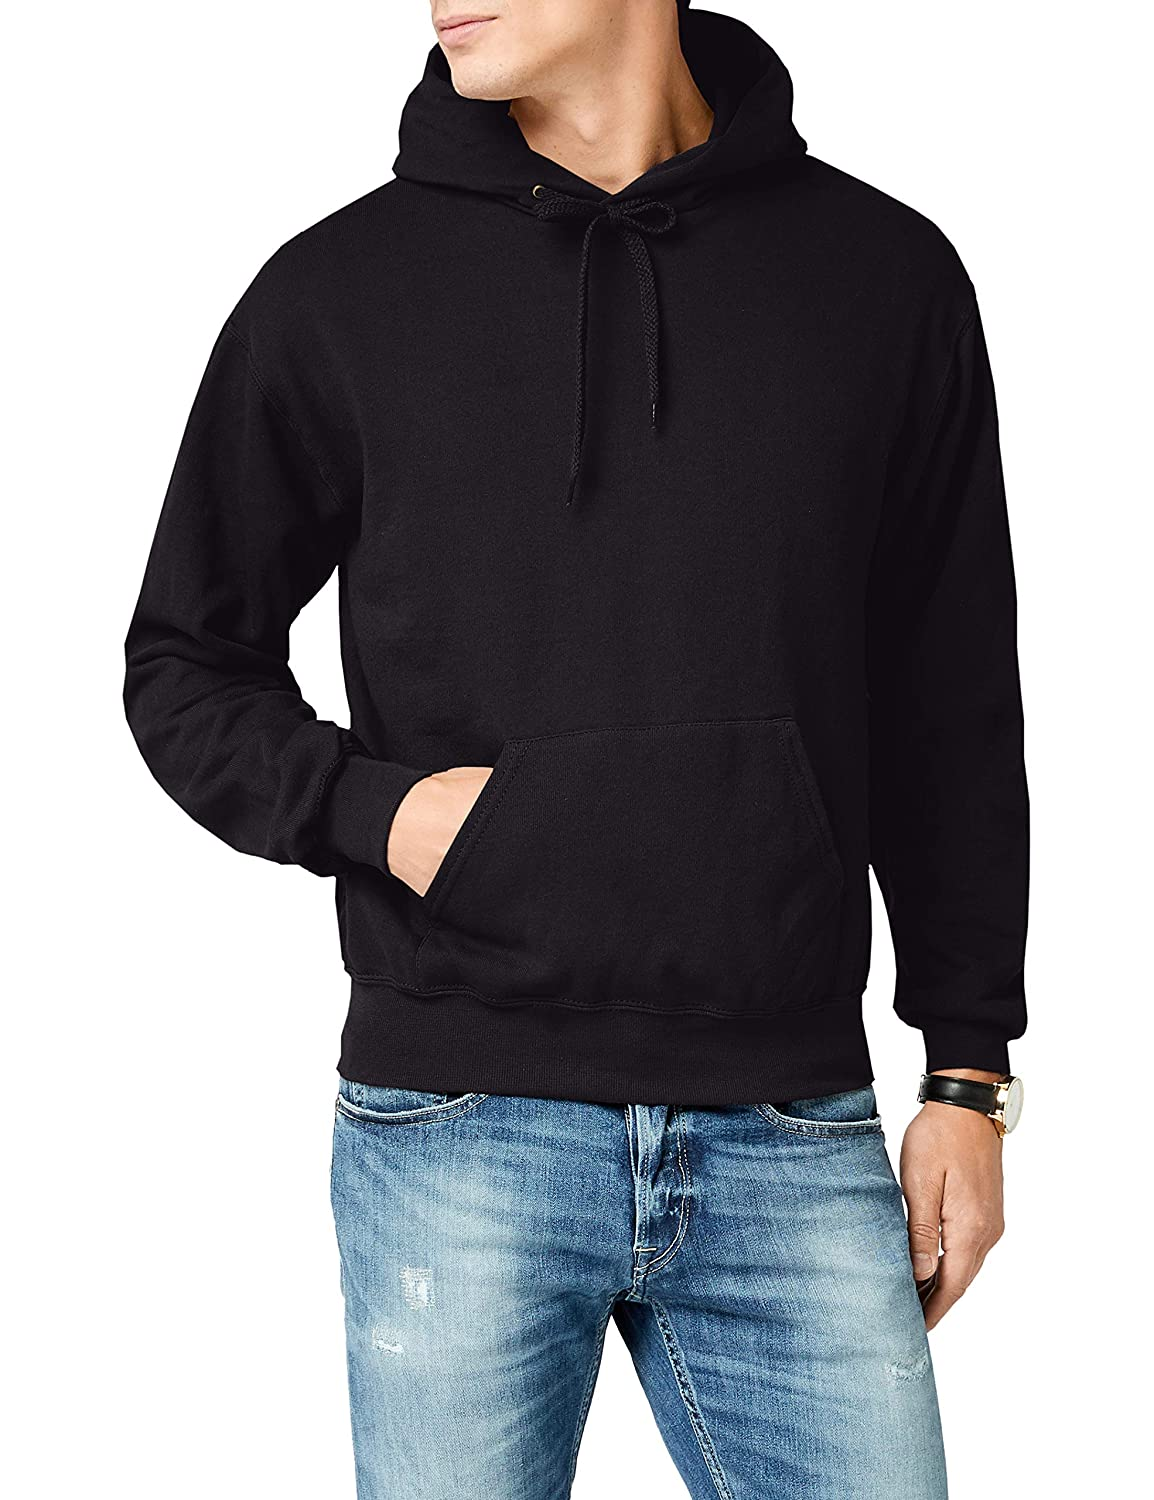 Fruit of the Loom 62-208-0, Sudadera con Capucha Para Hombre